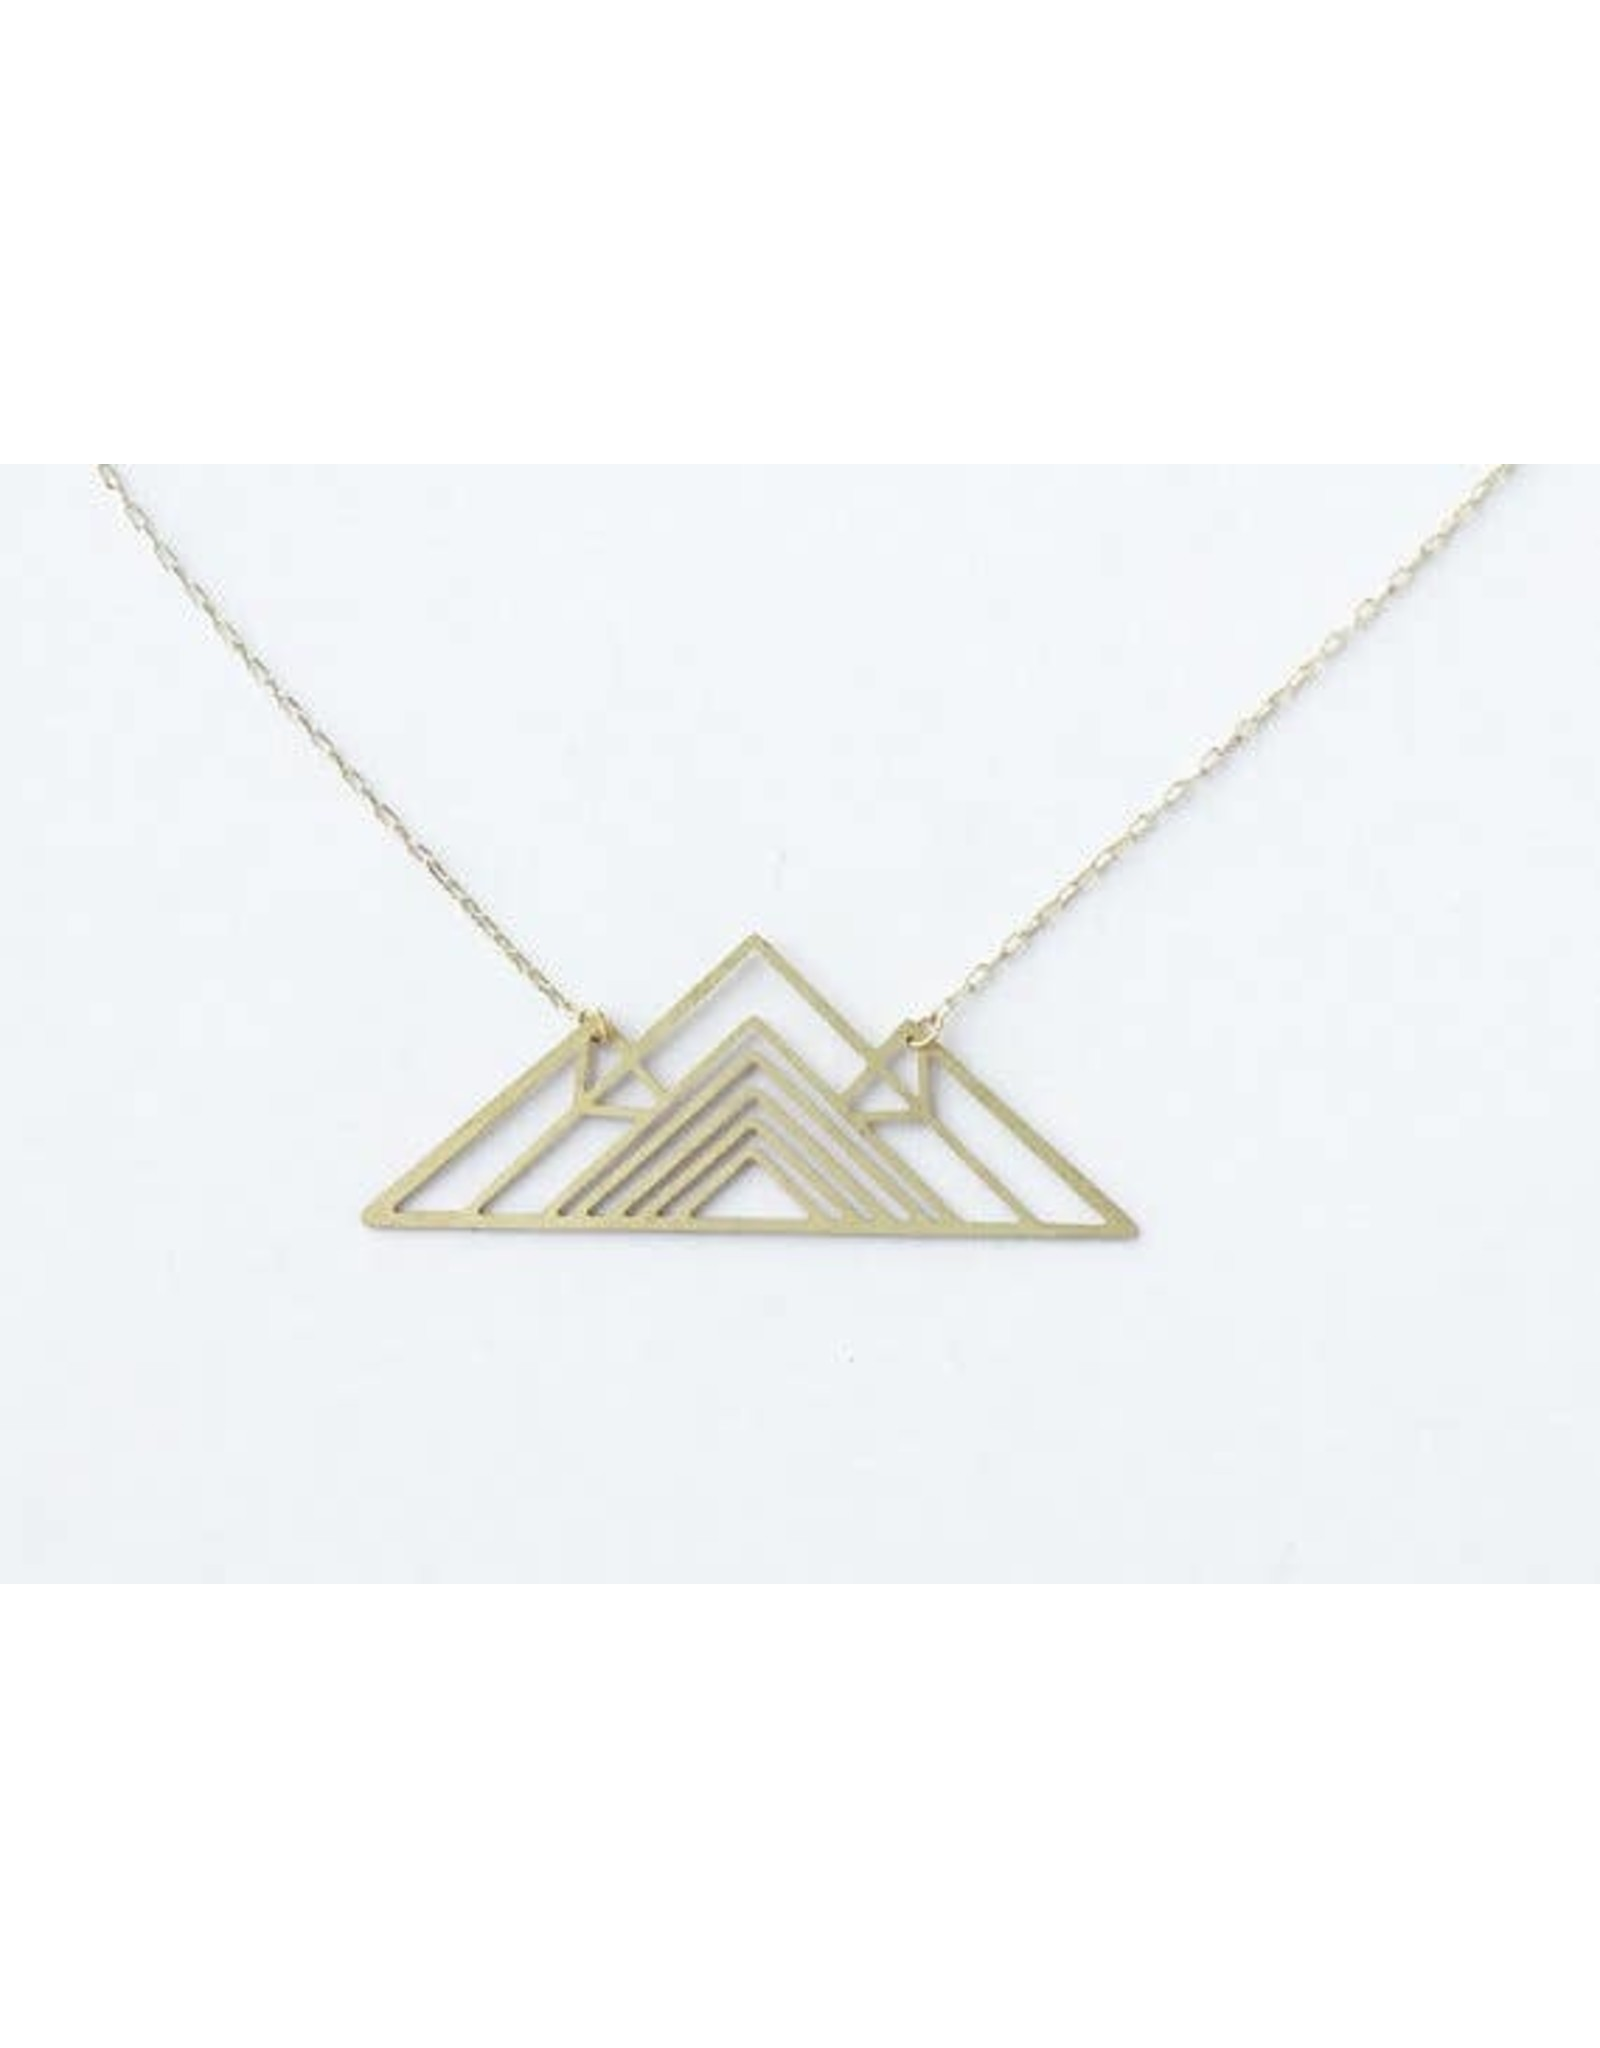 TLJ Geometric Mountain Necklace: Silver